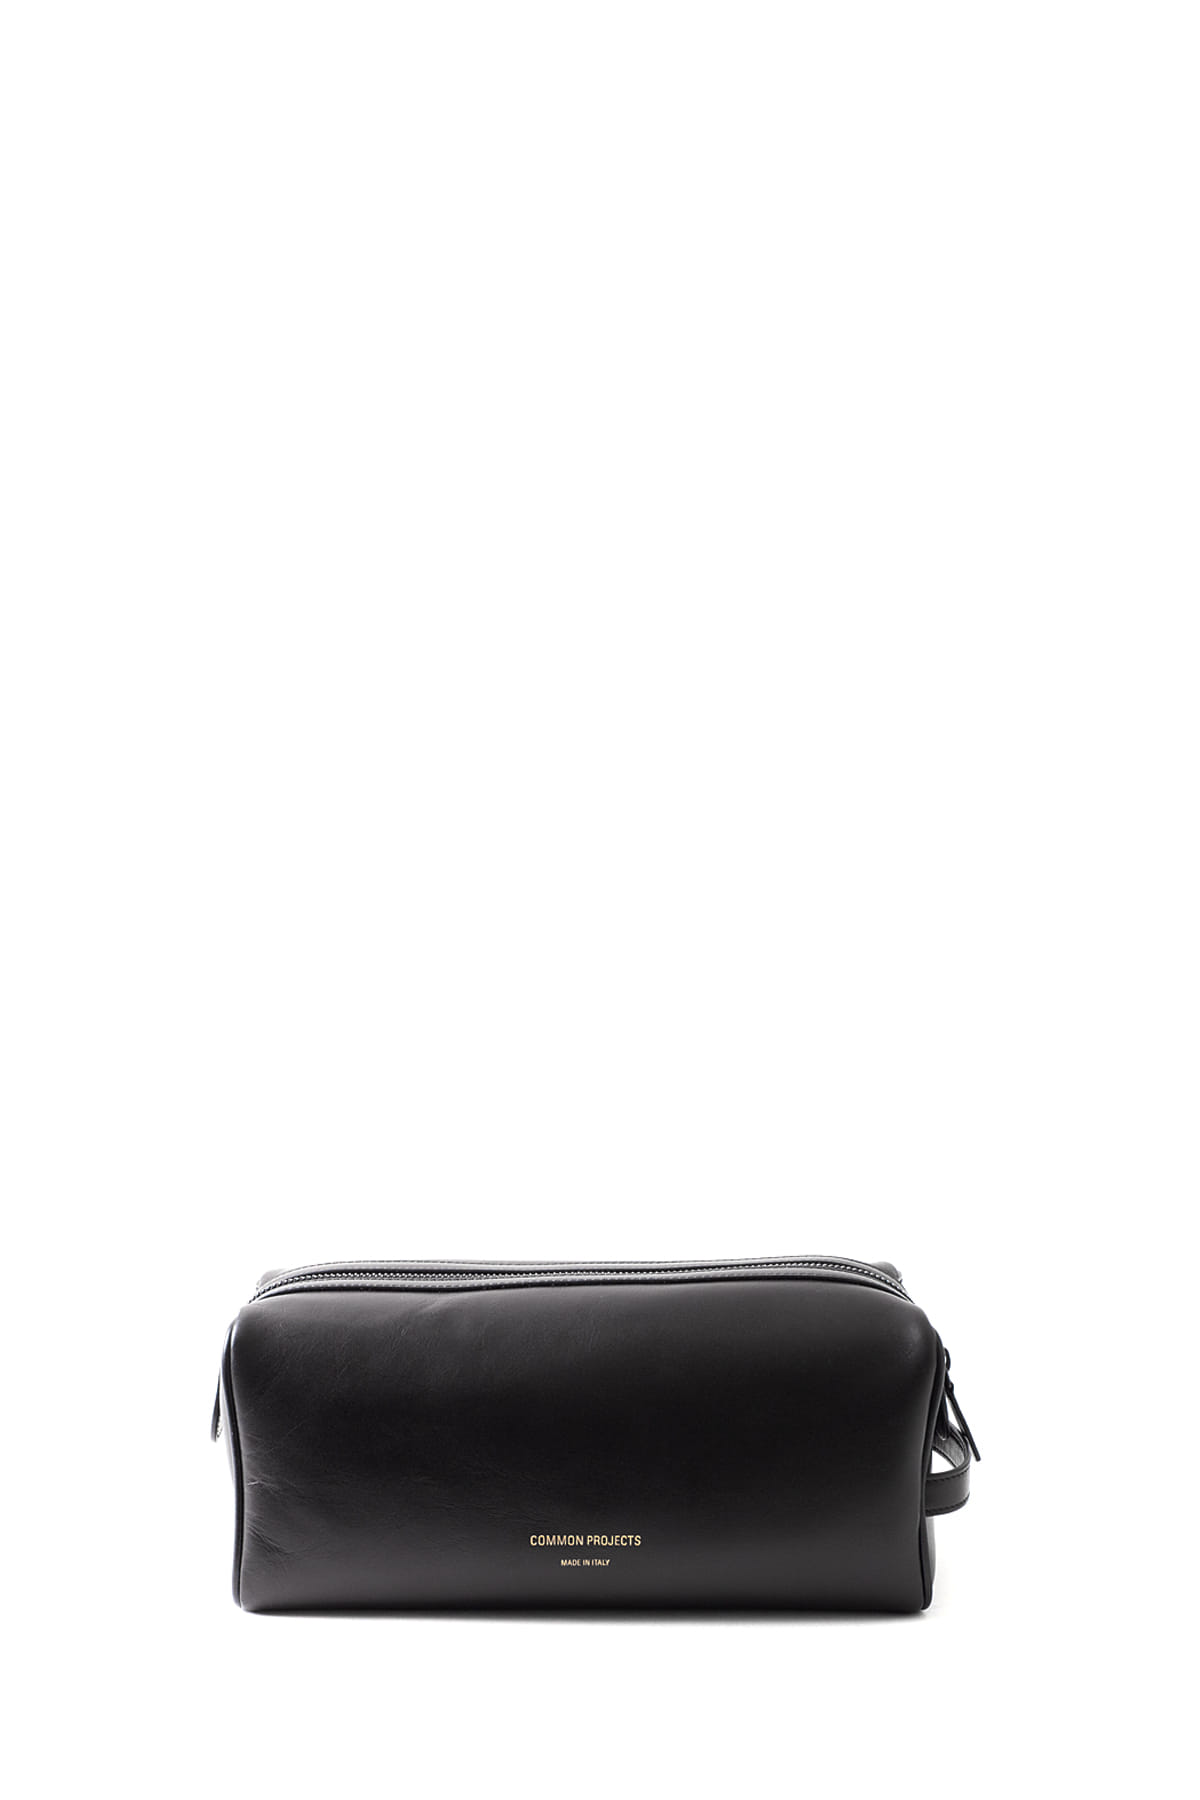 Common Projects : Toiletry Bag (Black)